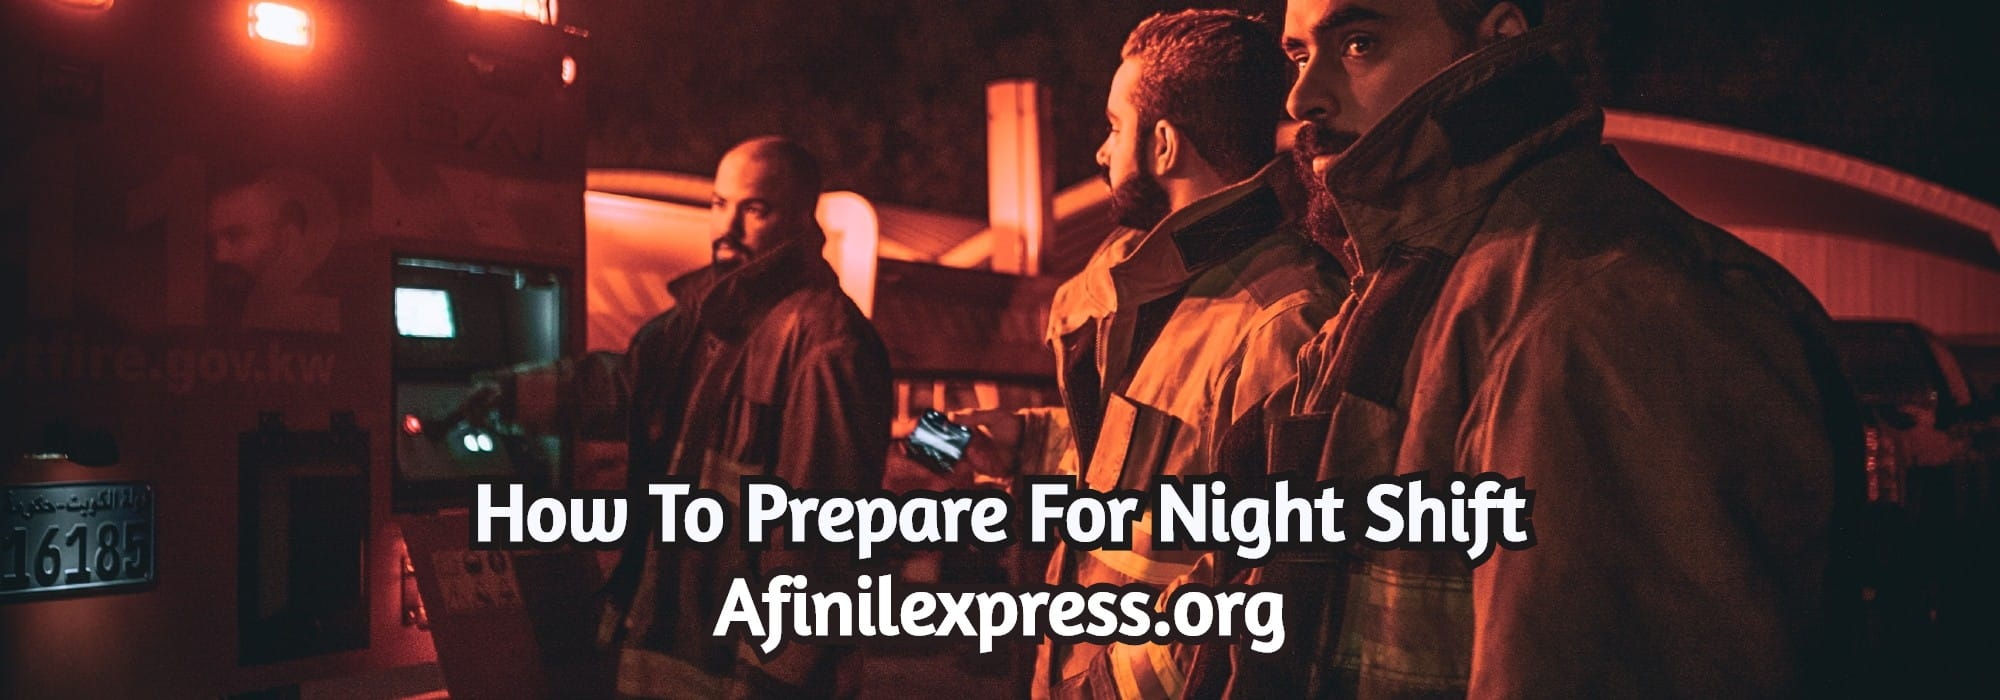 nightshift, how to stay awake, afinilexpress.org